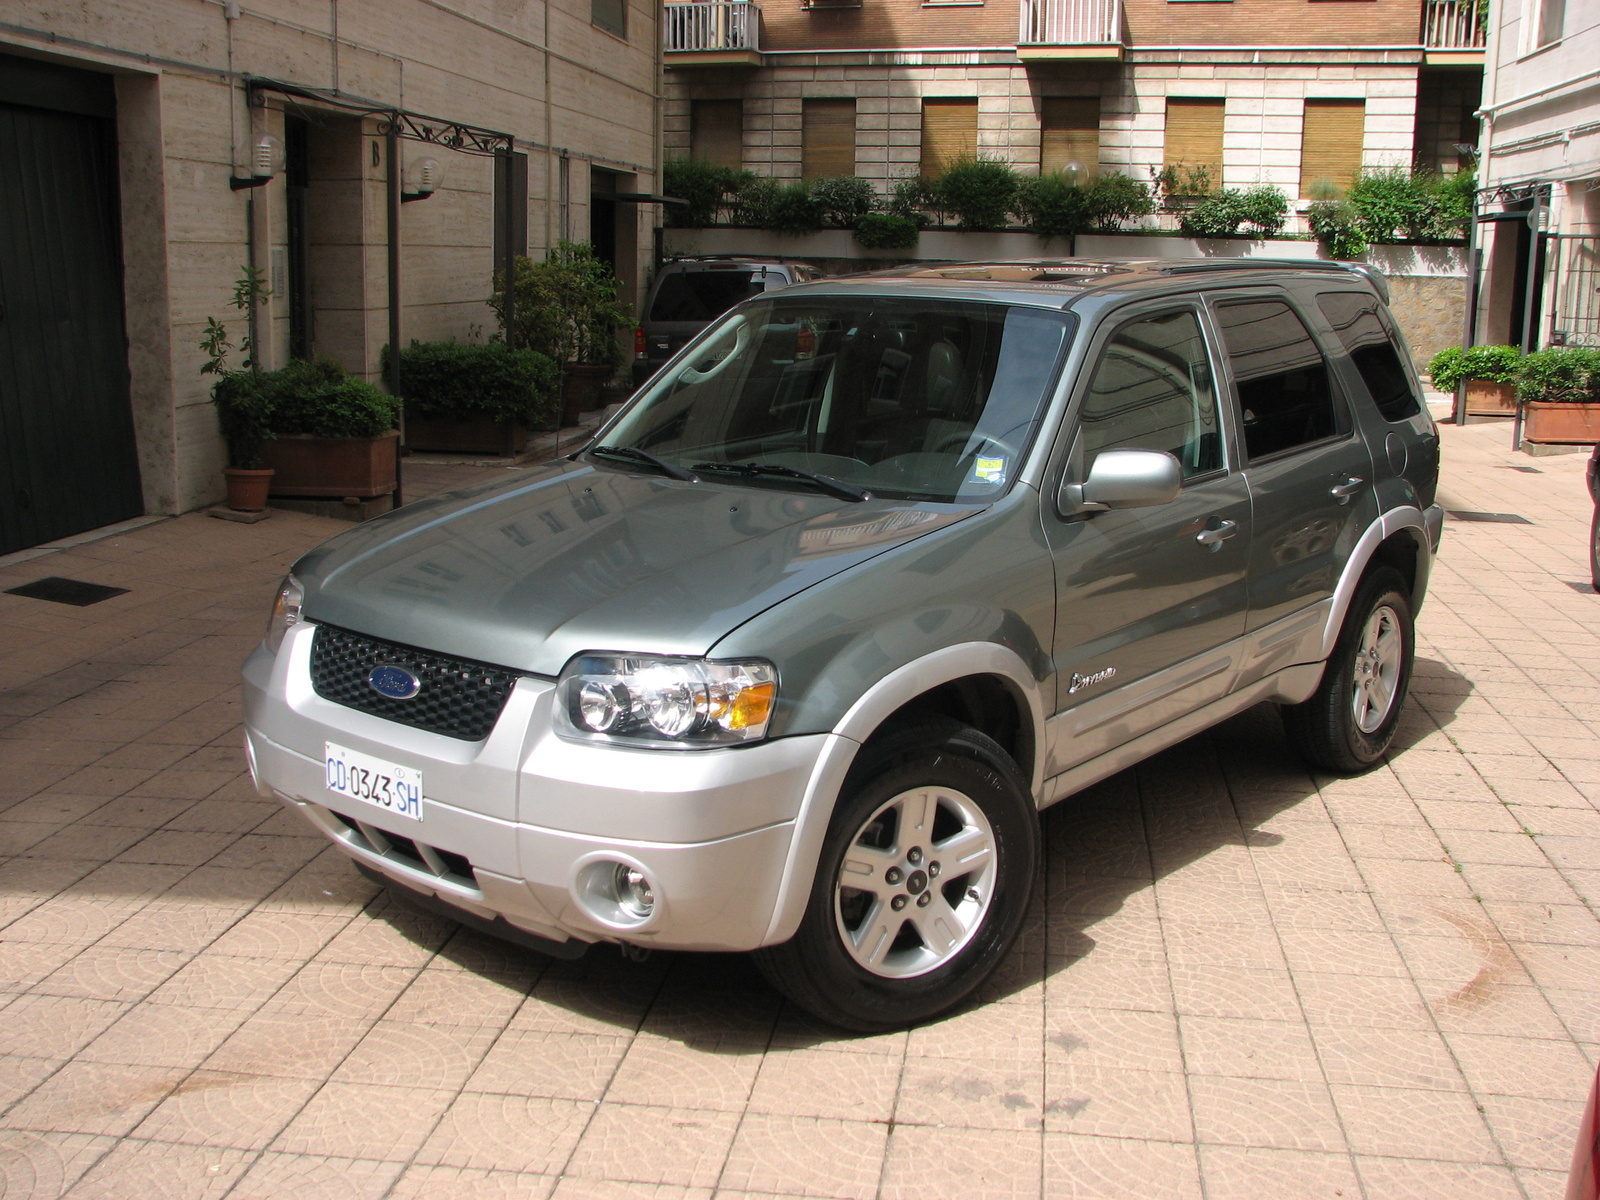 Picture of 2006 Ford Escape Hybrid 4dr SUV